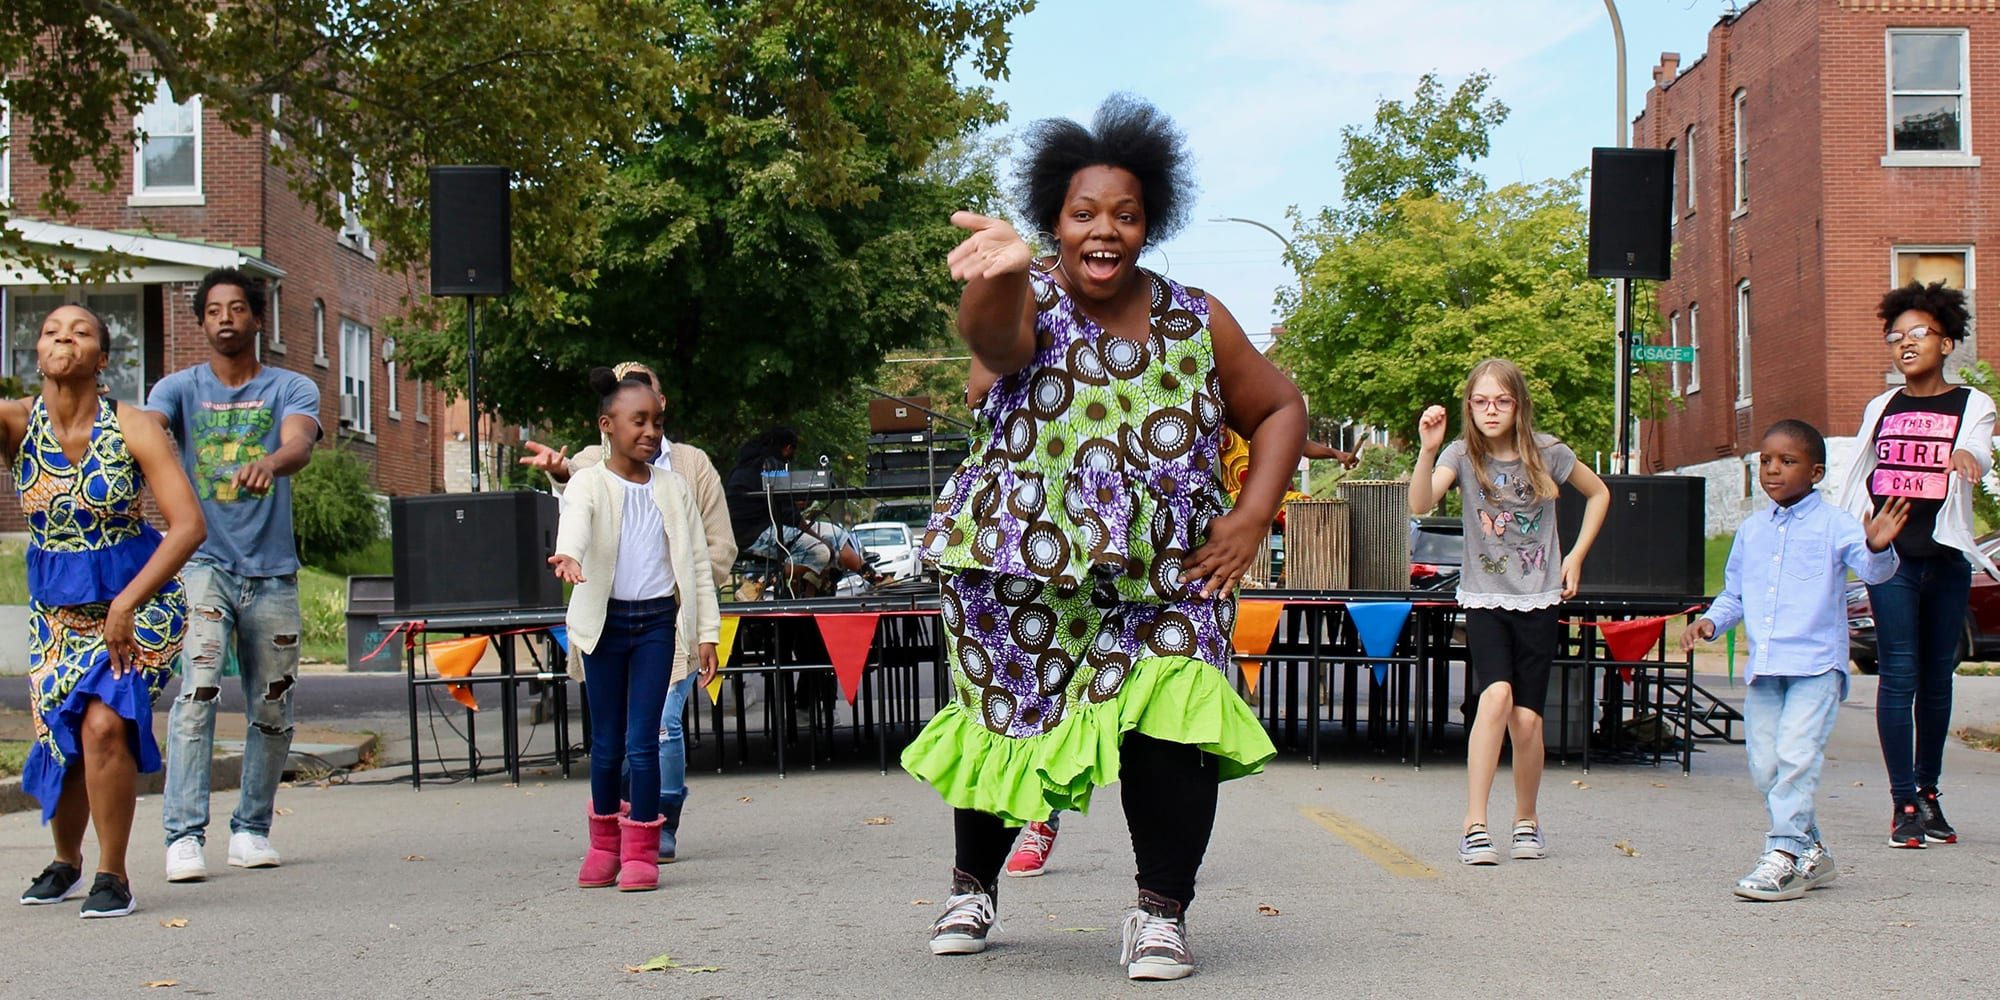 Dancing at the Common Sound Festival at Marquette Park in Dutchtown.